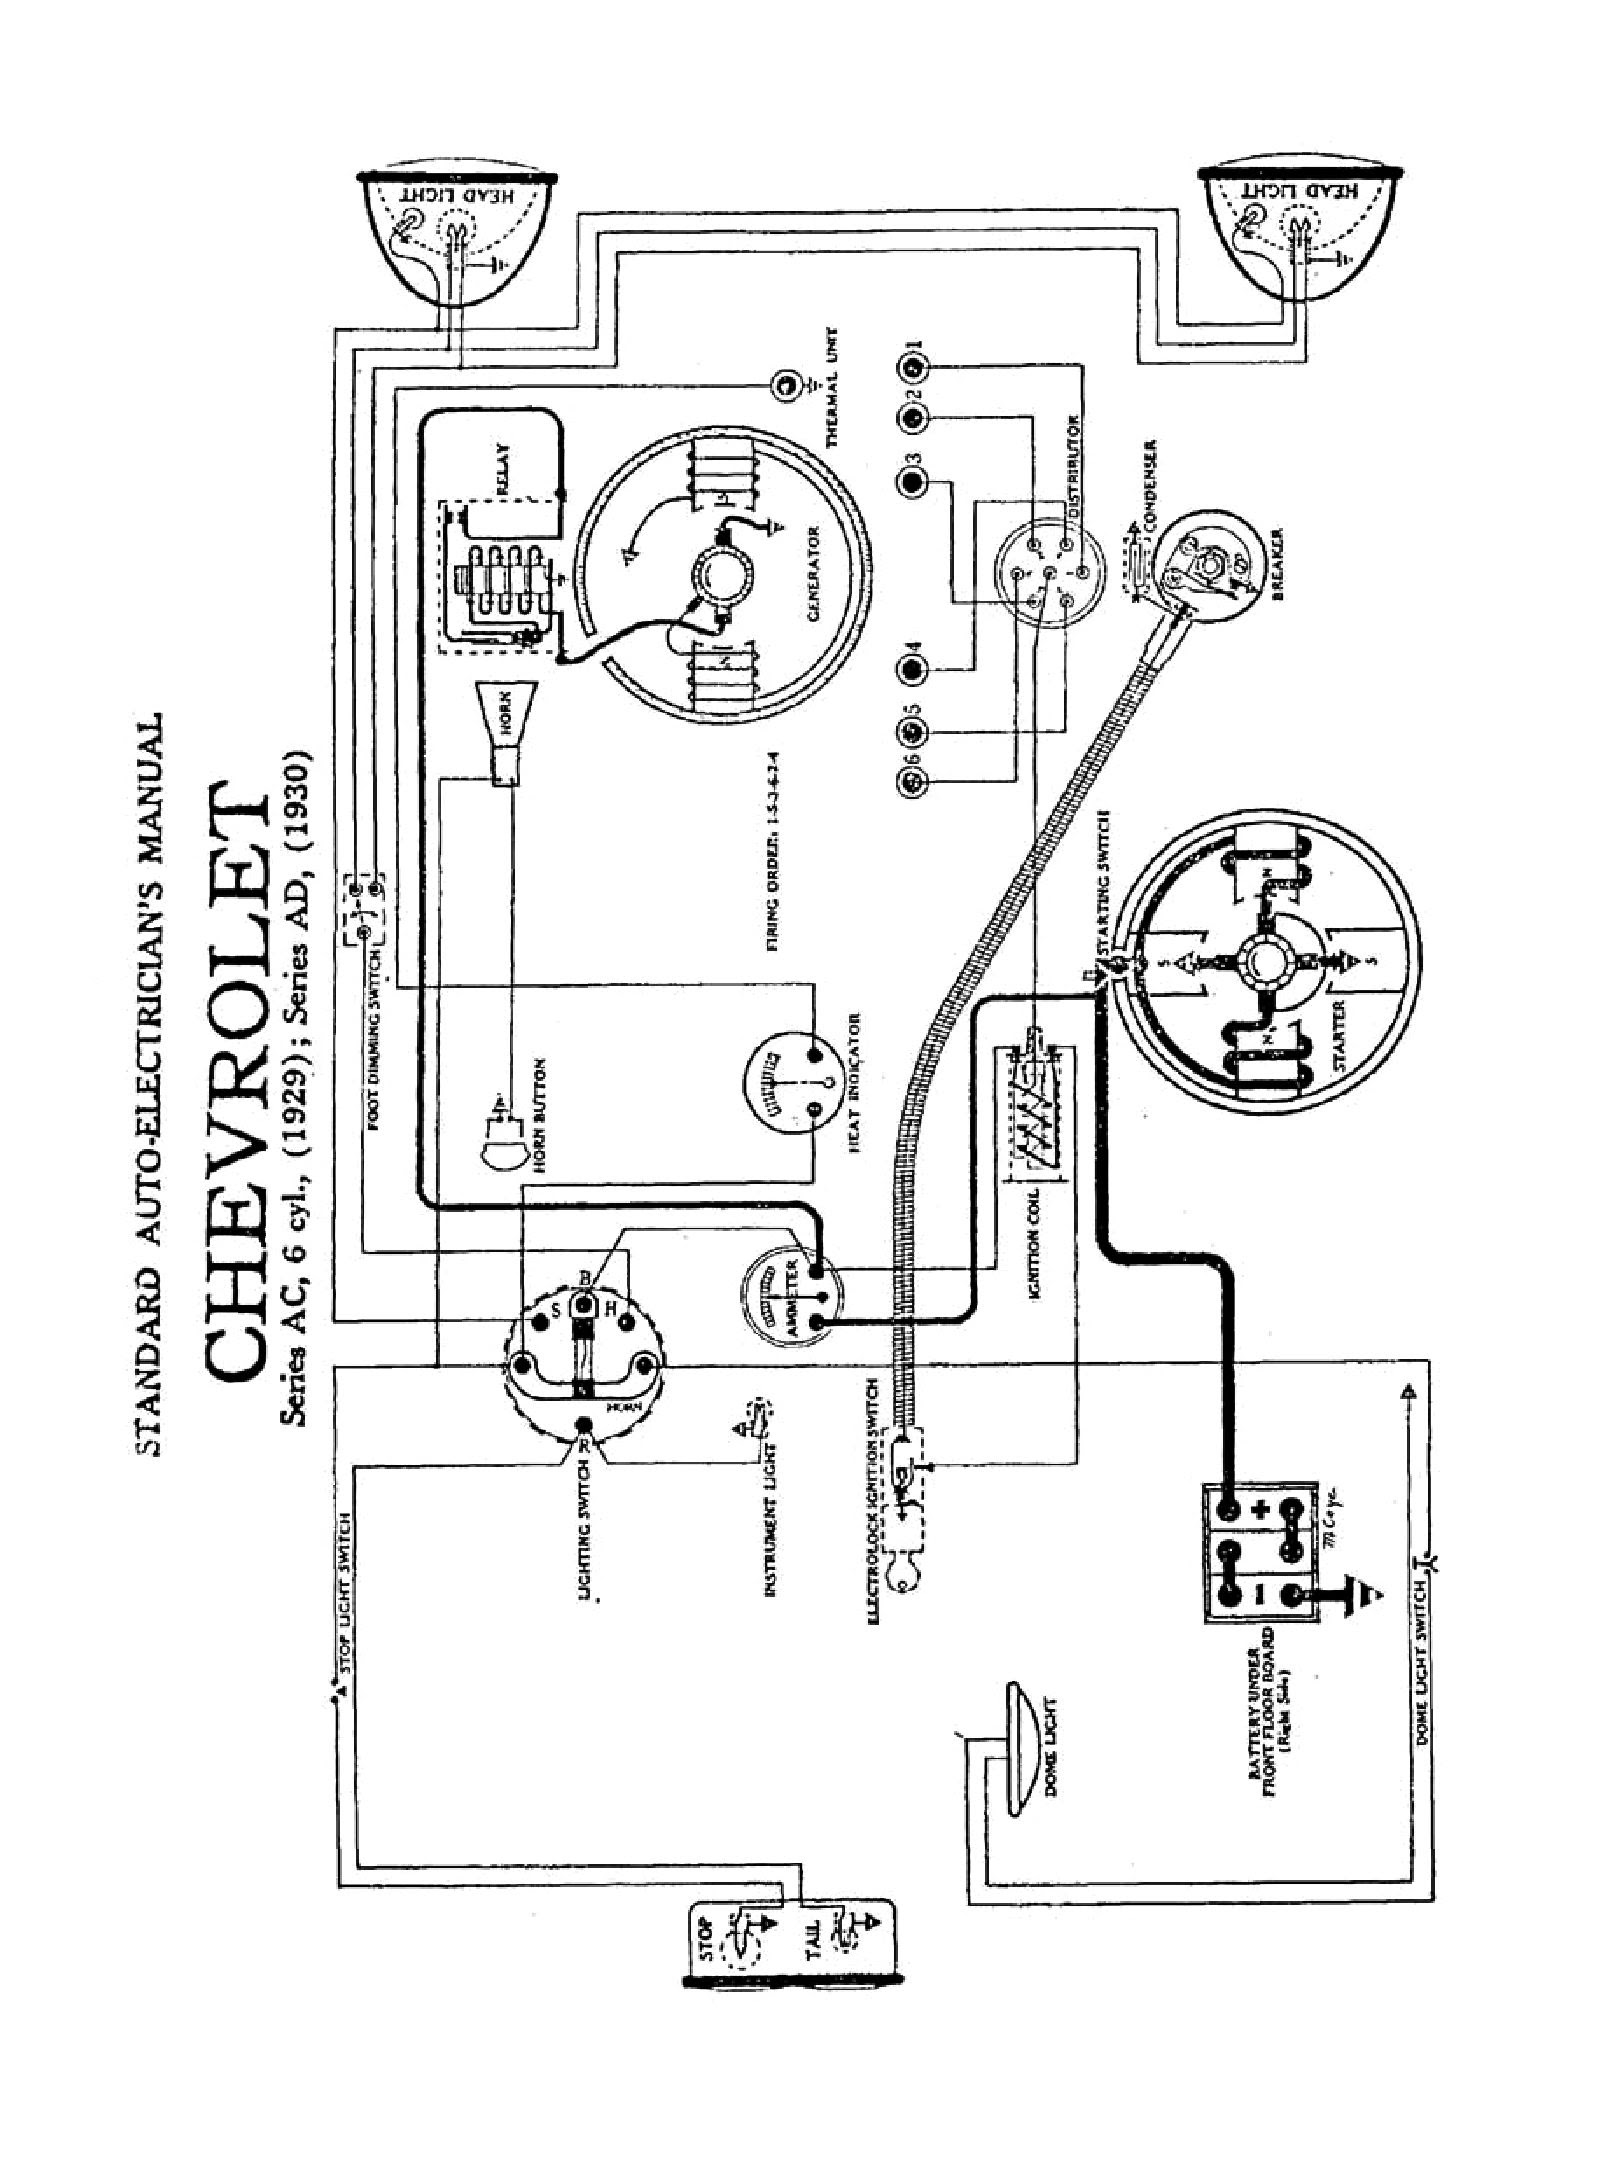 1949 Gmc Truck Wiring Wiring Diagram Macro Macro Riply It